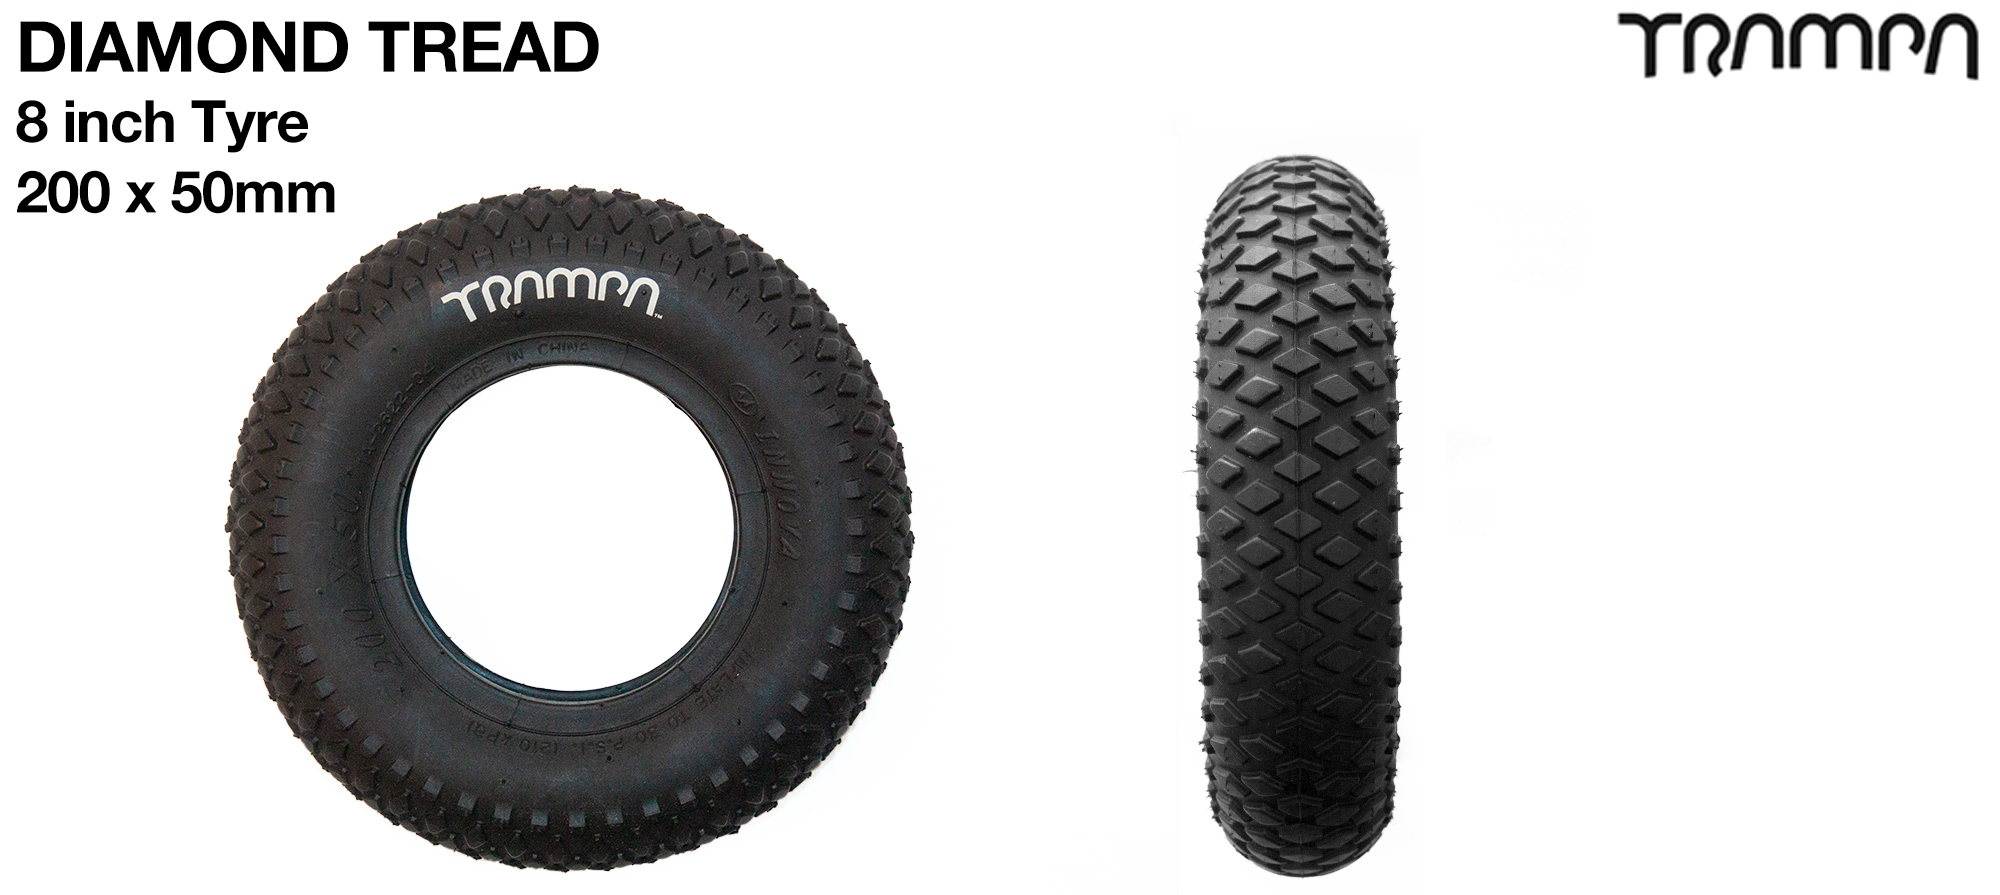 8 Inch INNOVA DIAMOND TYRES - All Round